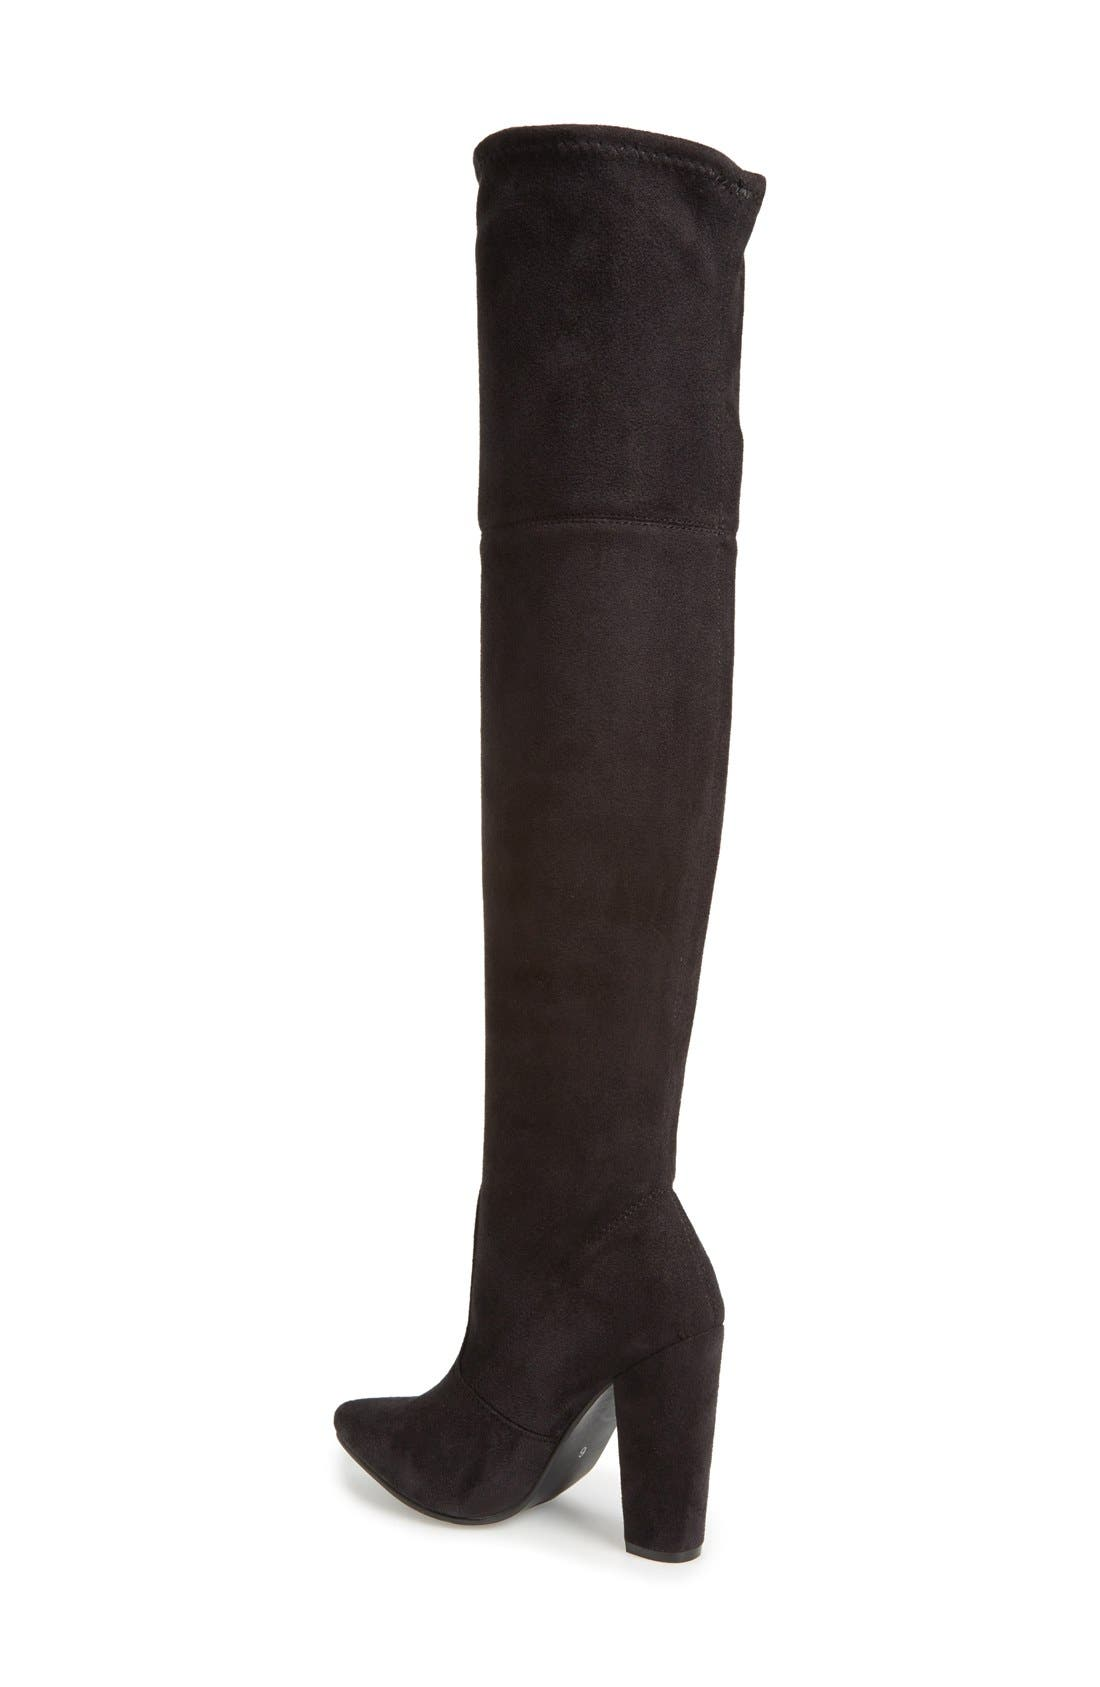 'Rocking' Over the Knee Boot,                             Alternate thumbnail 4, color,                             001